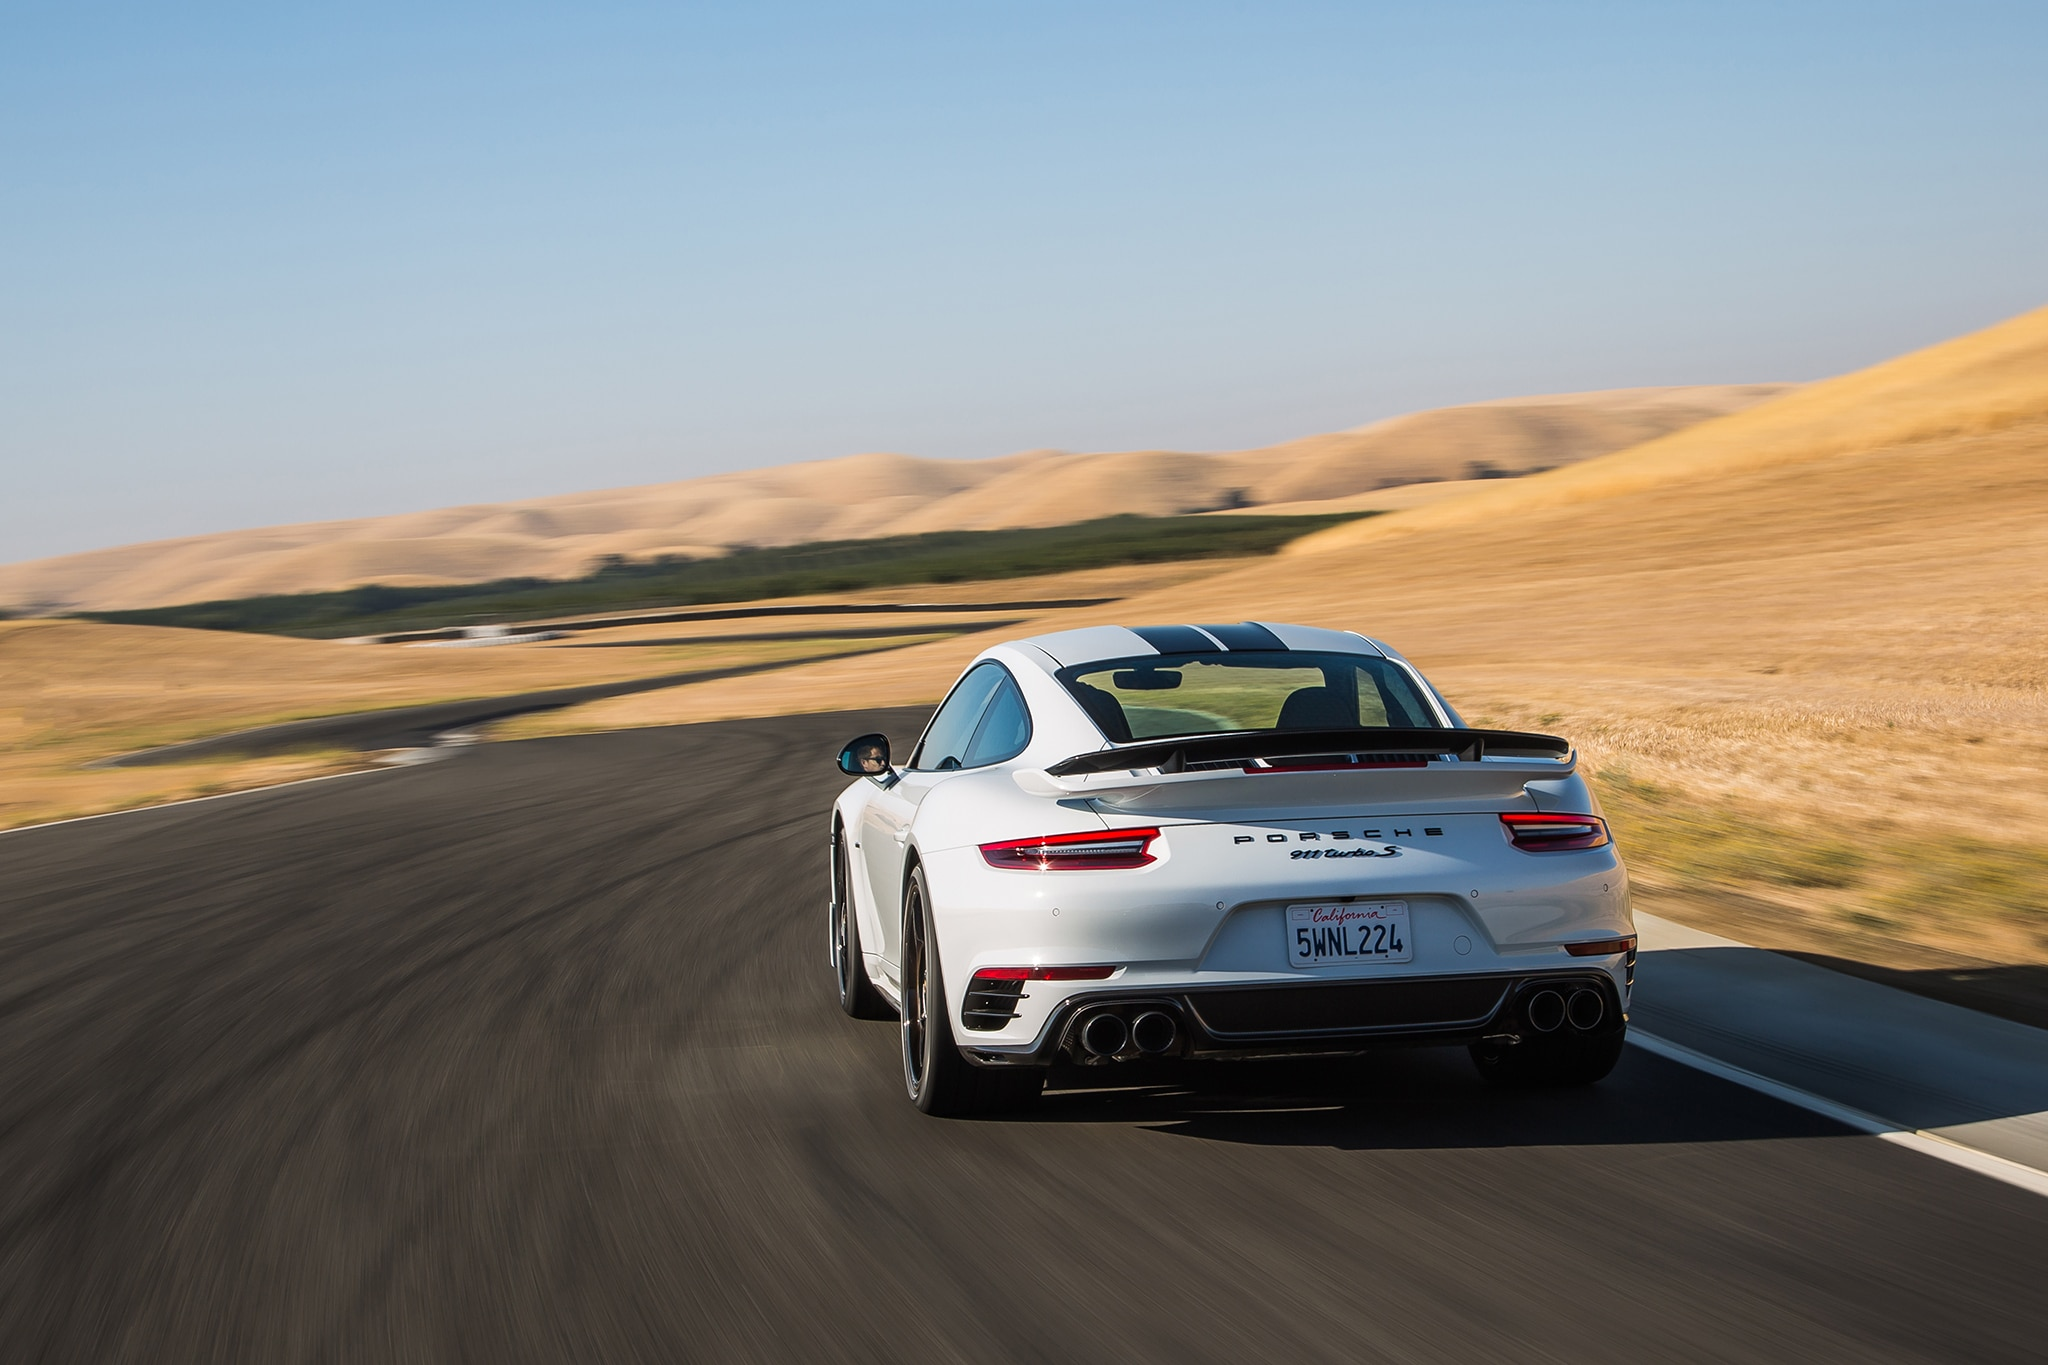 2018 Porsche 911 Turbo S Exclusive Rear View In Motion 03